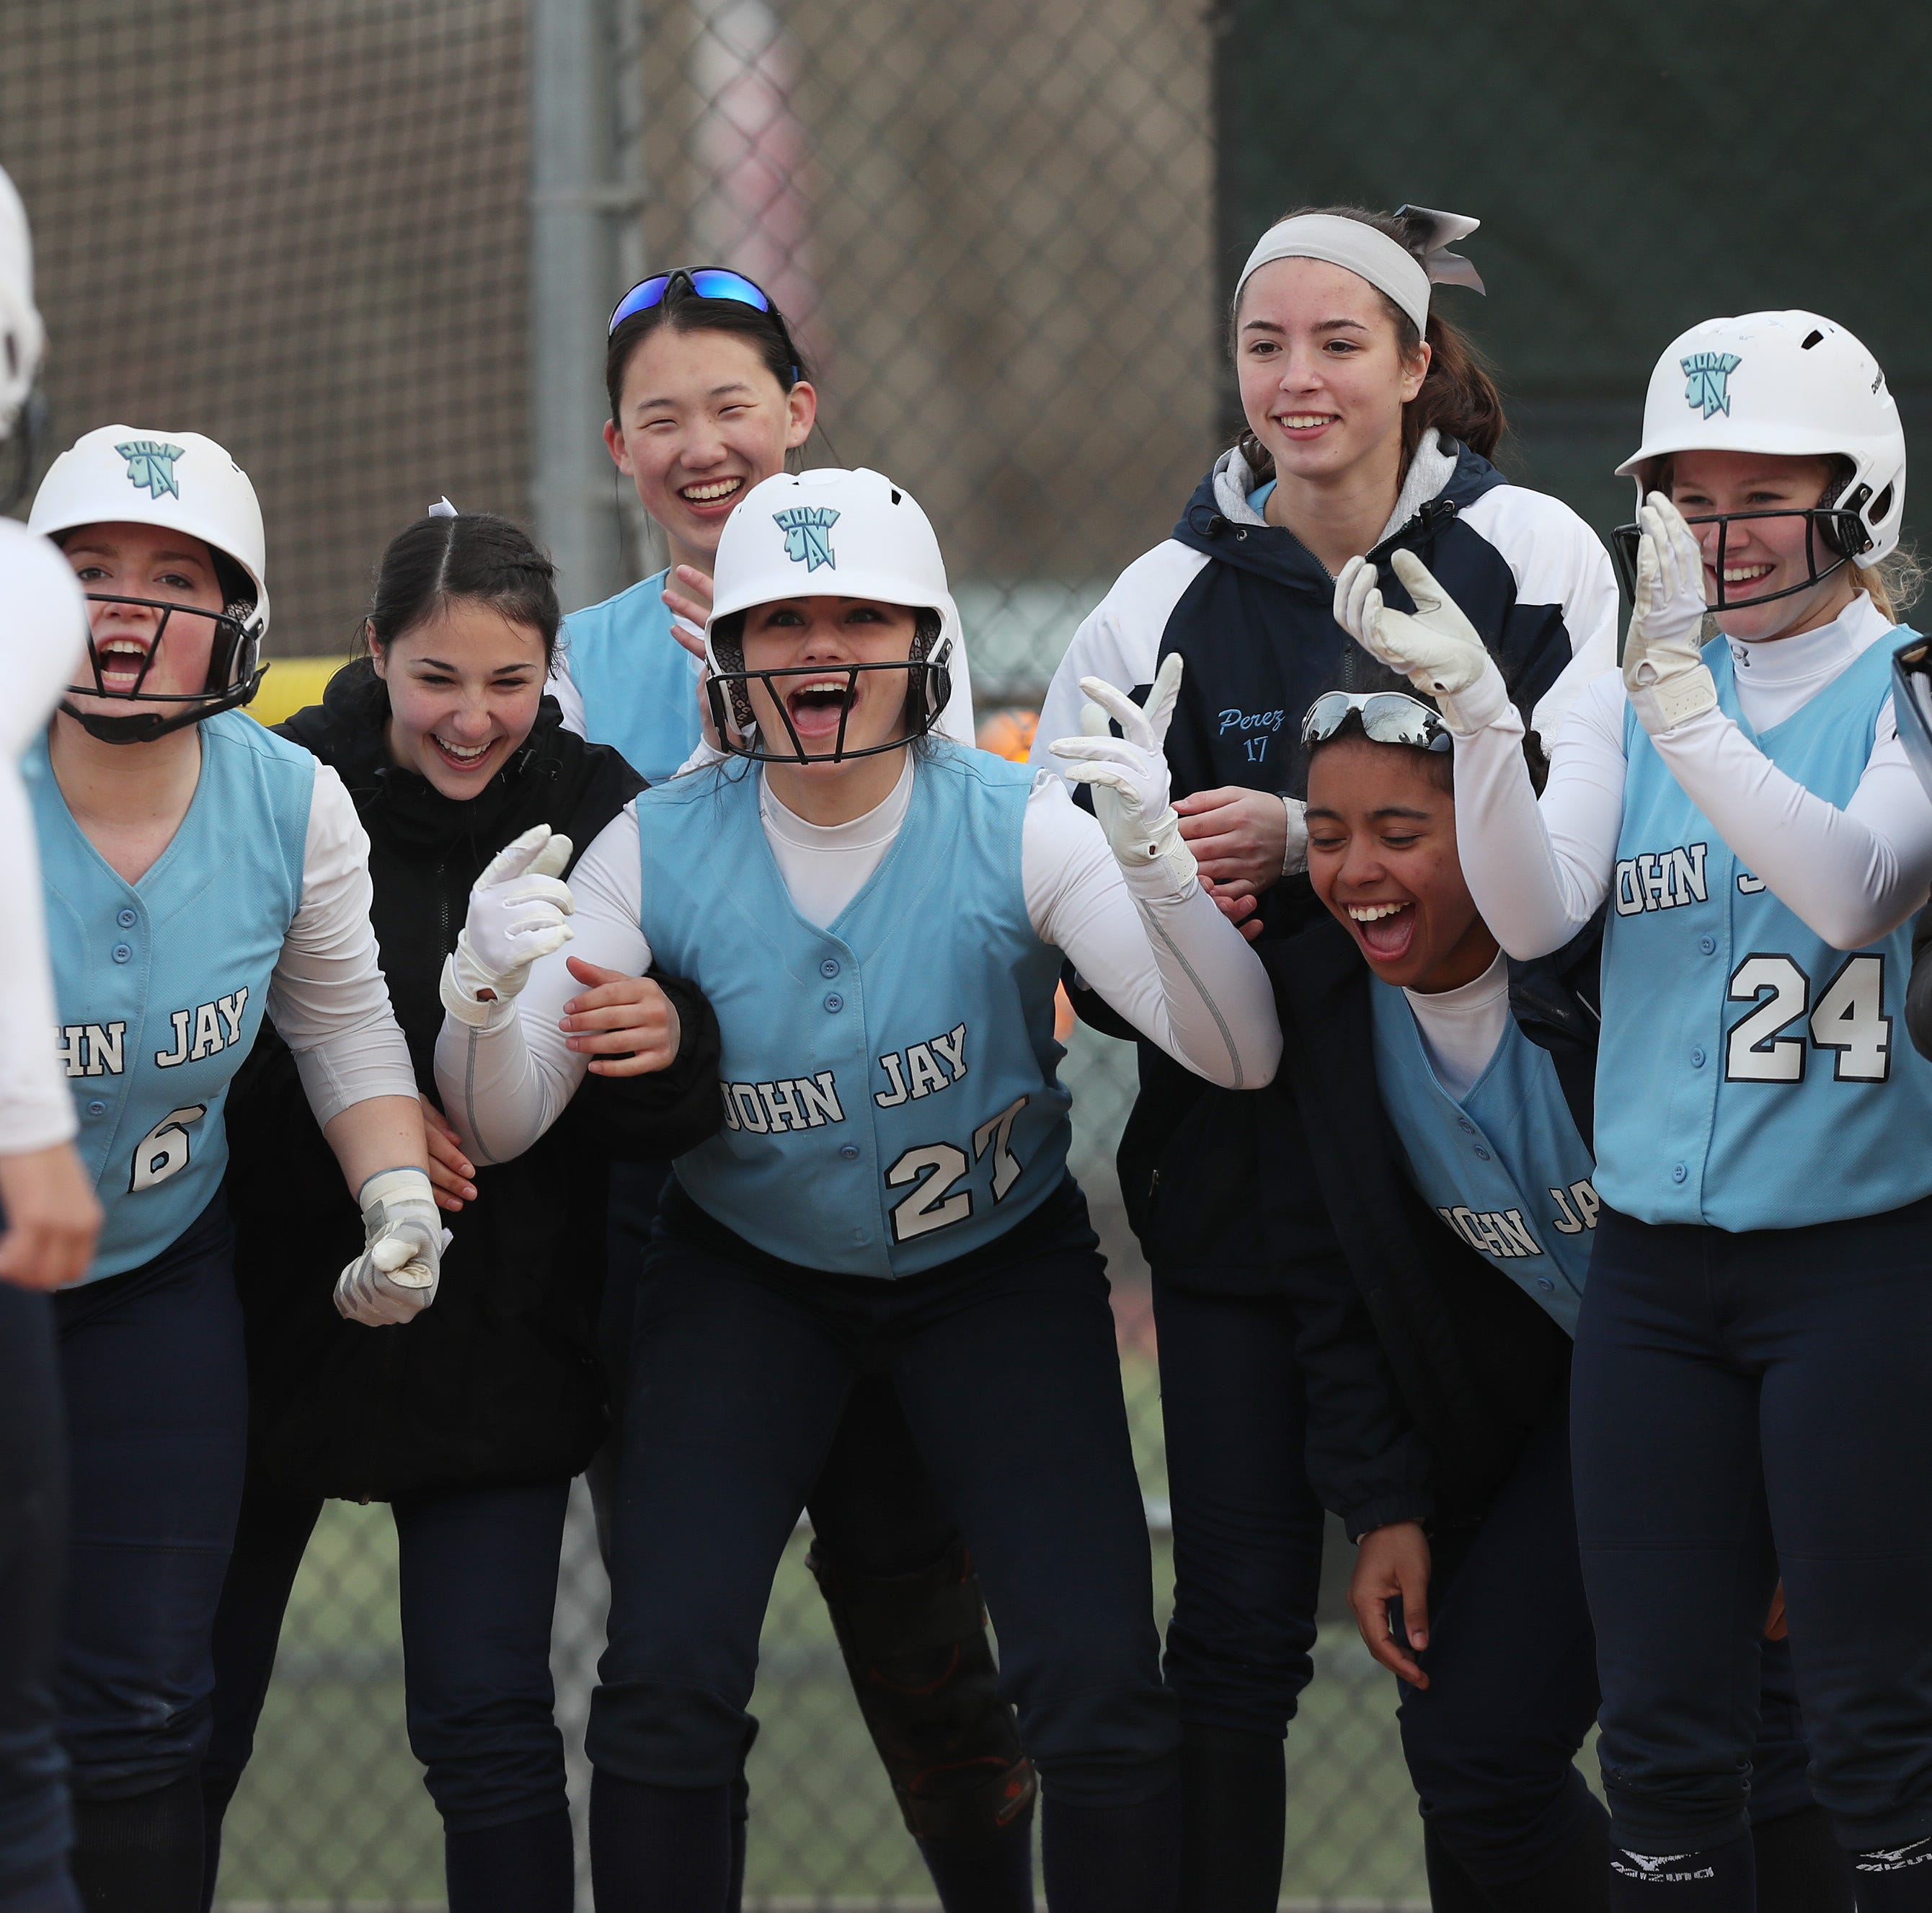 Softball: Tensions high as John Jay-East Fishkill routs Yorktown in 'AA' final rematch